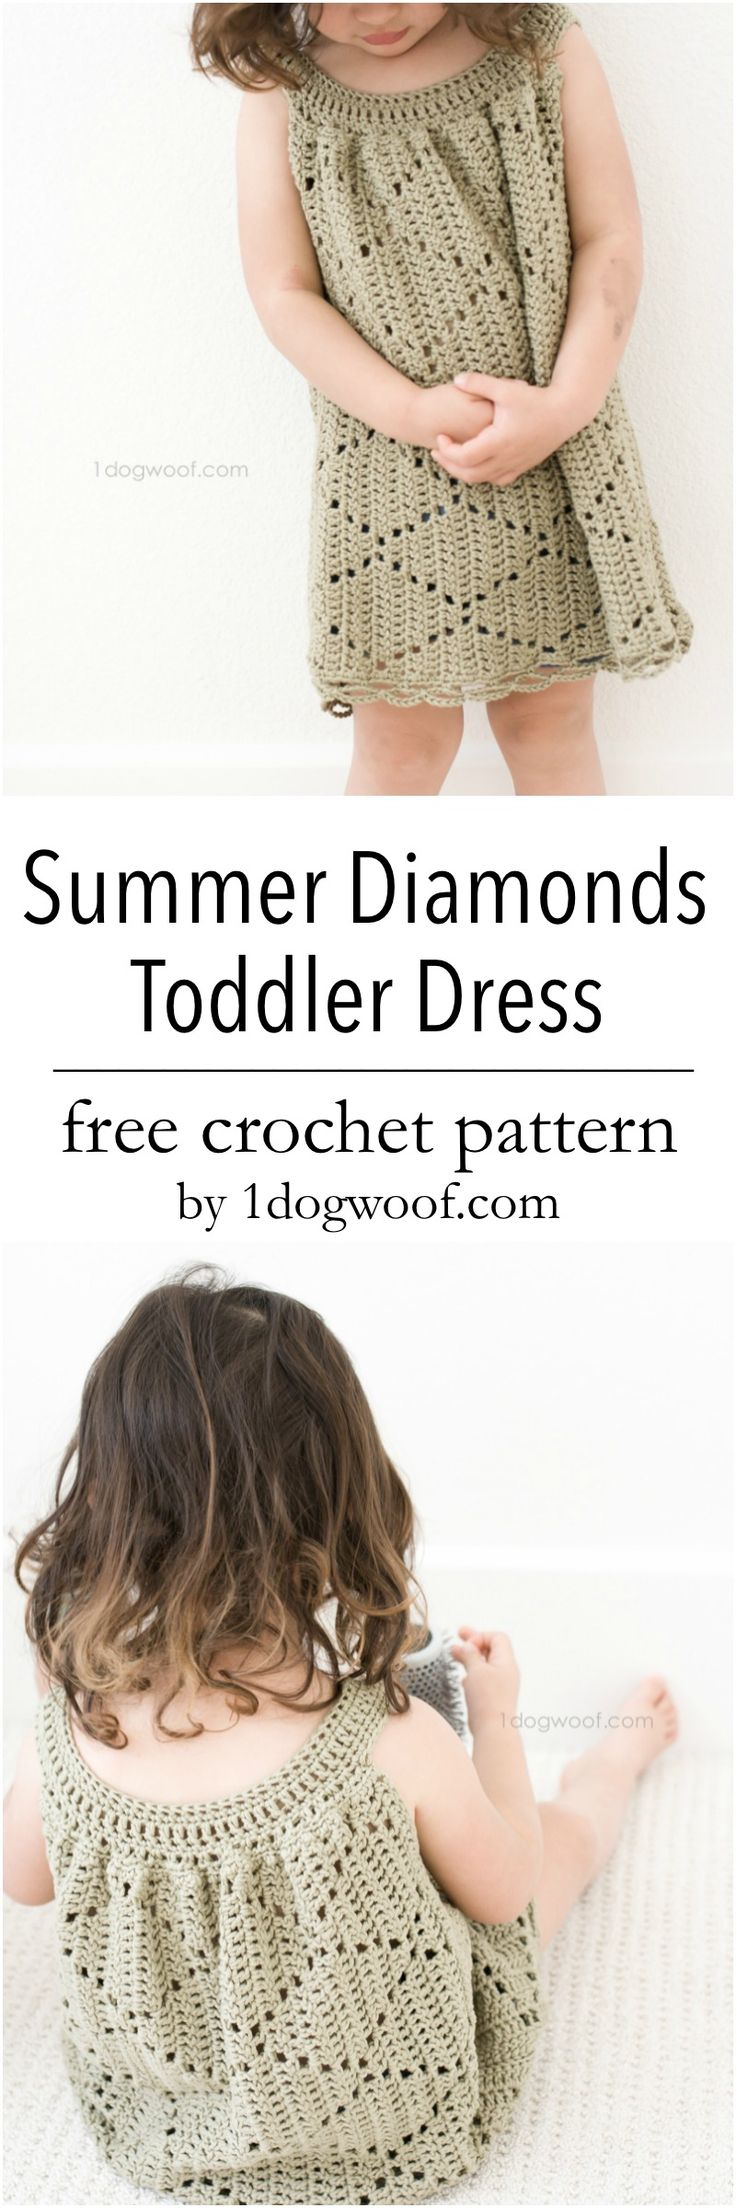 Free crochet pattern to make an adorable dress for a little girl. Features a fun diamond motif!